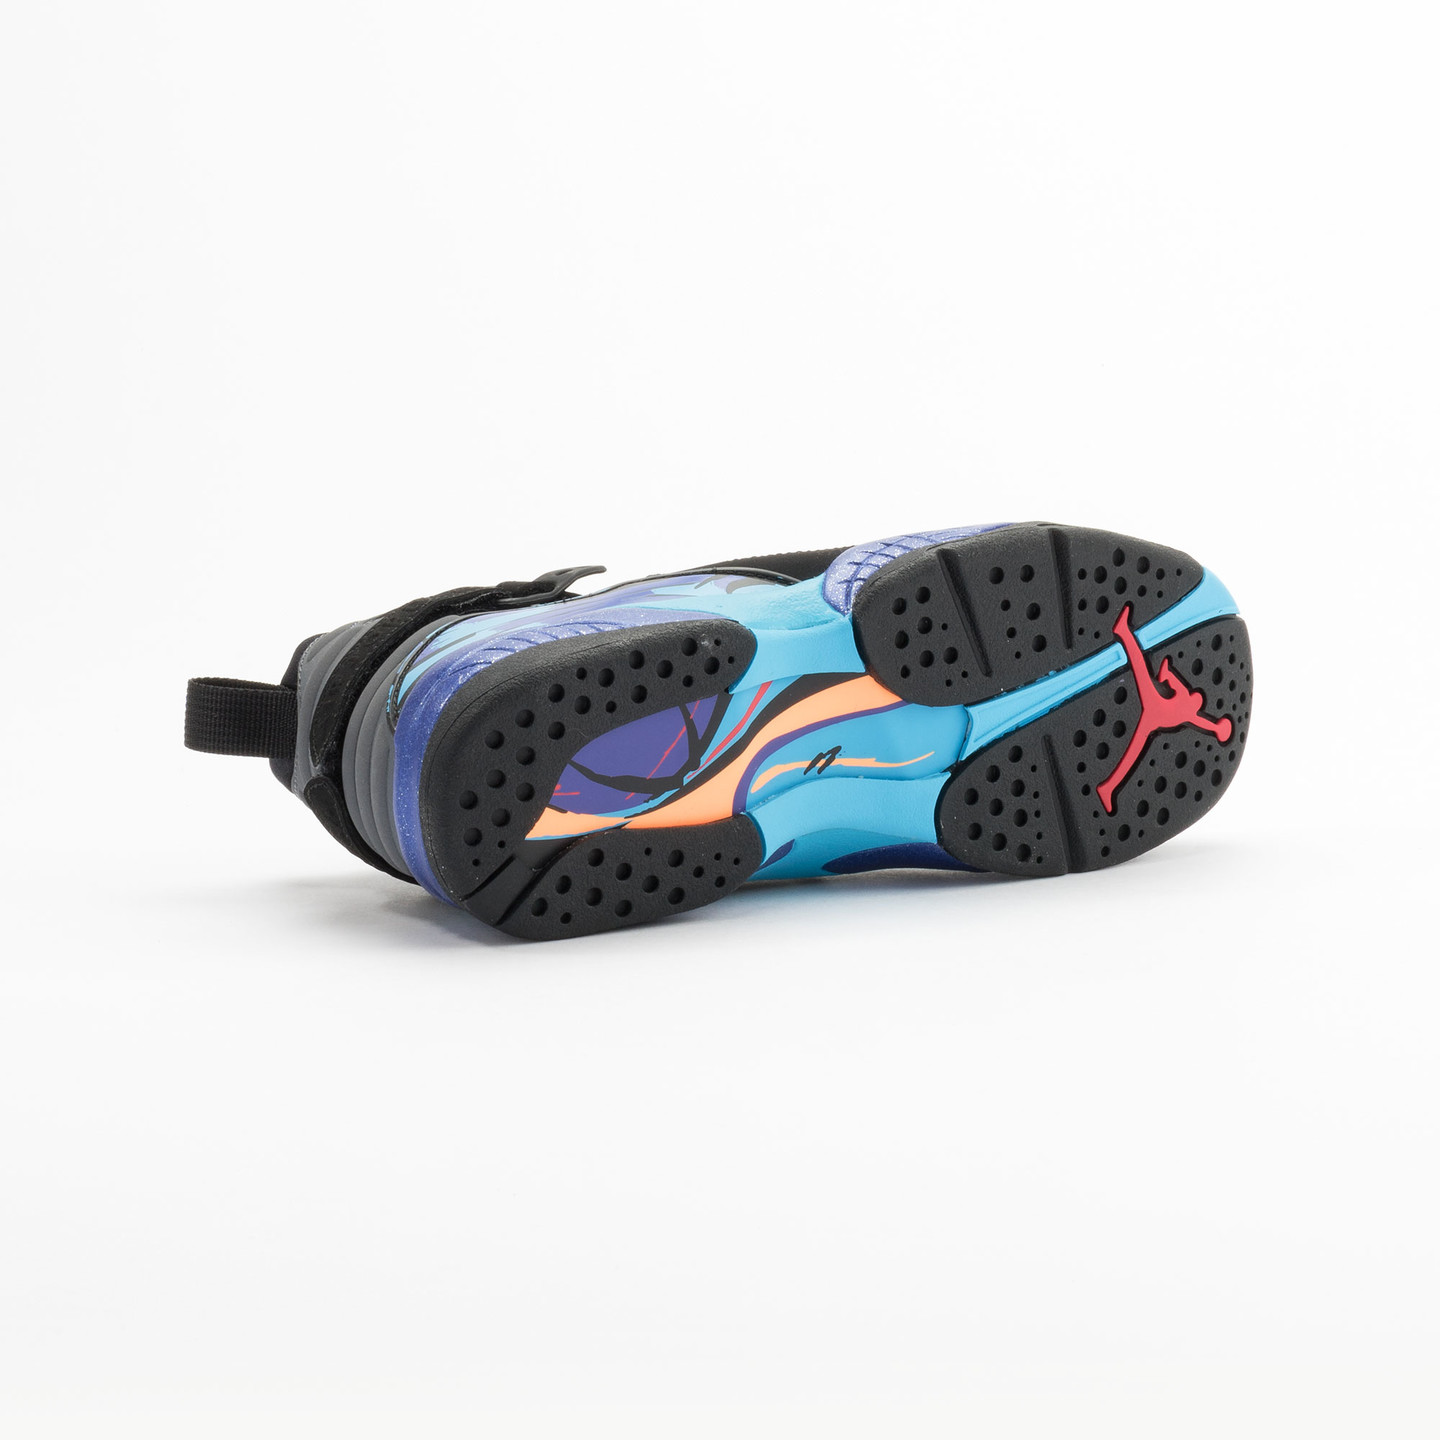 Jordan Air Jordan Retro 8 'Aqua' BG Black/True Red-Flint Grey-Bright Concord 305368-025-39